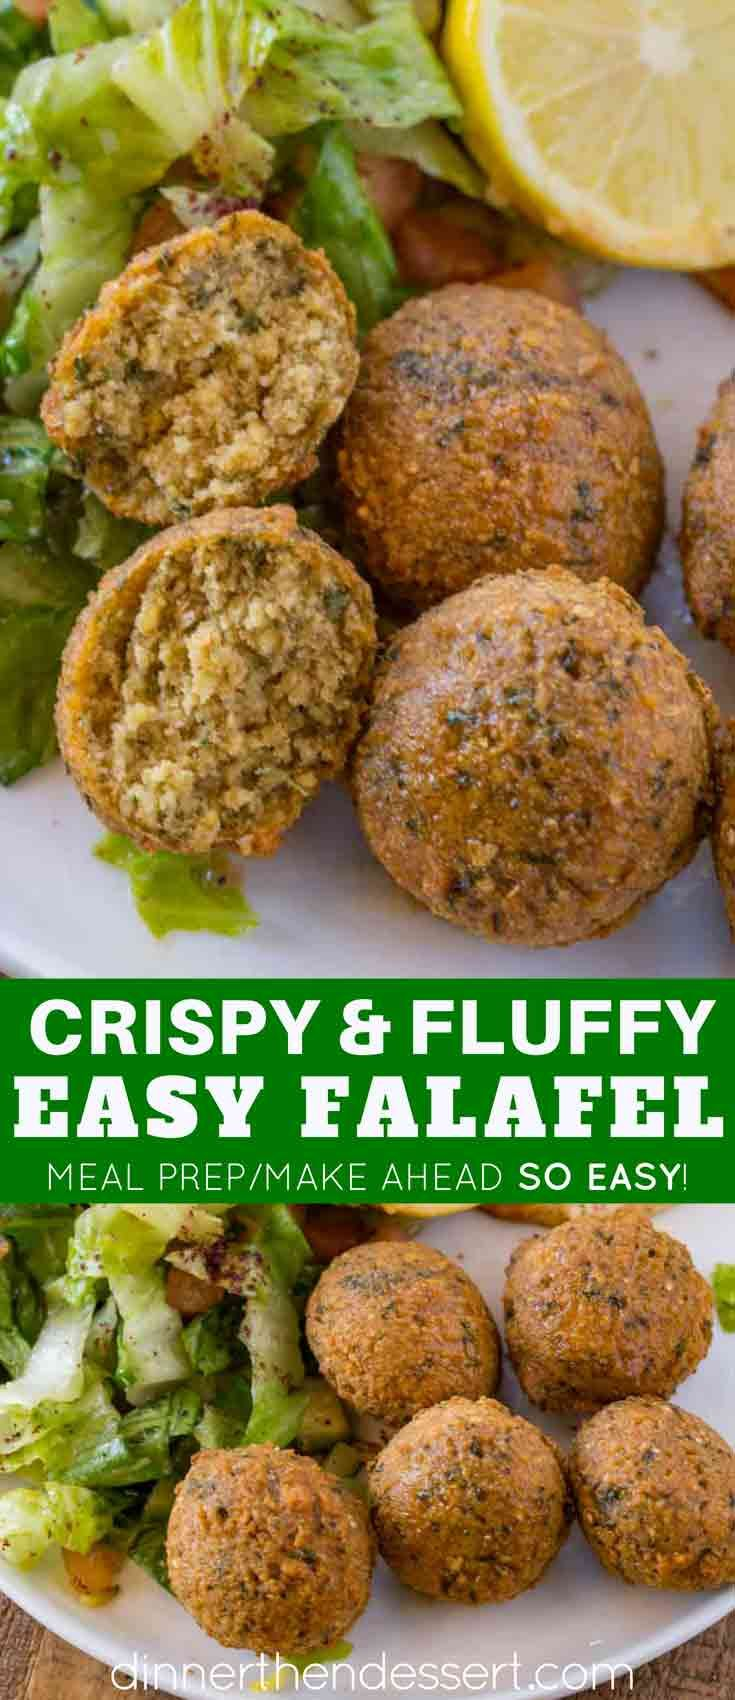 Classic Falafel Made With Dried Chickpeas And Tahini This Traditional Falafel Is Exactly What You D Have At Your Favo Comida Comida Deliciosa Comidas Exoticas